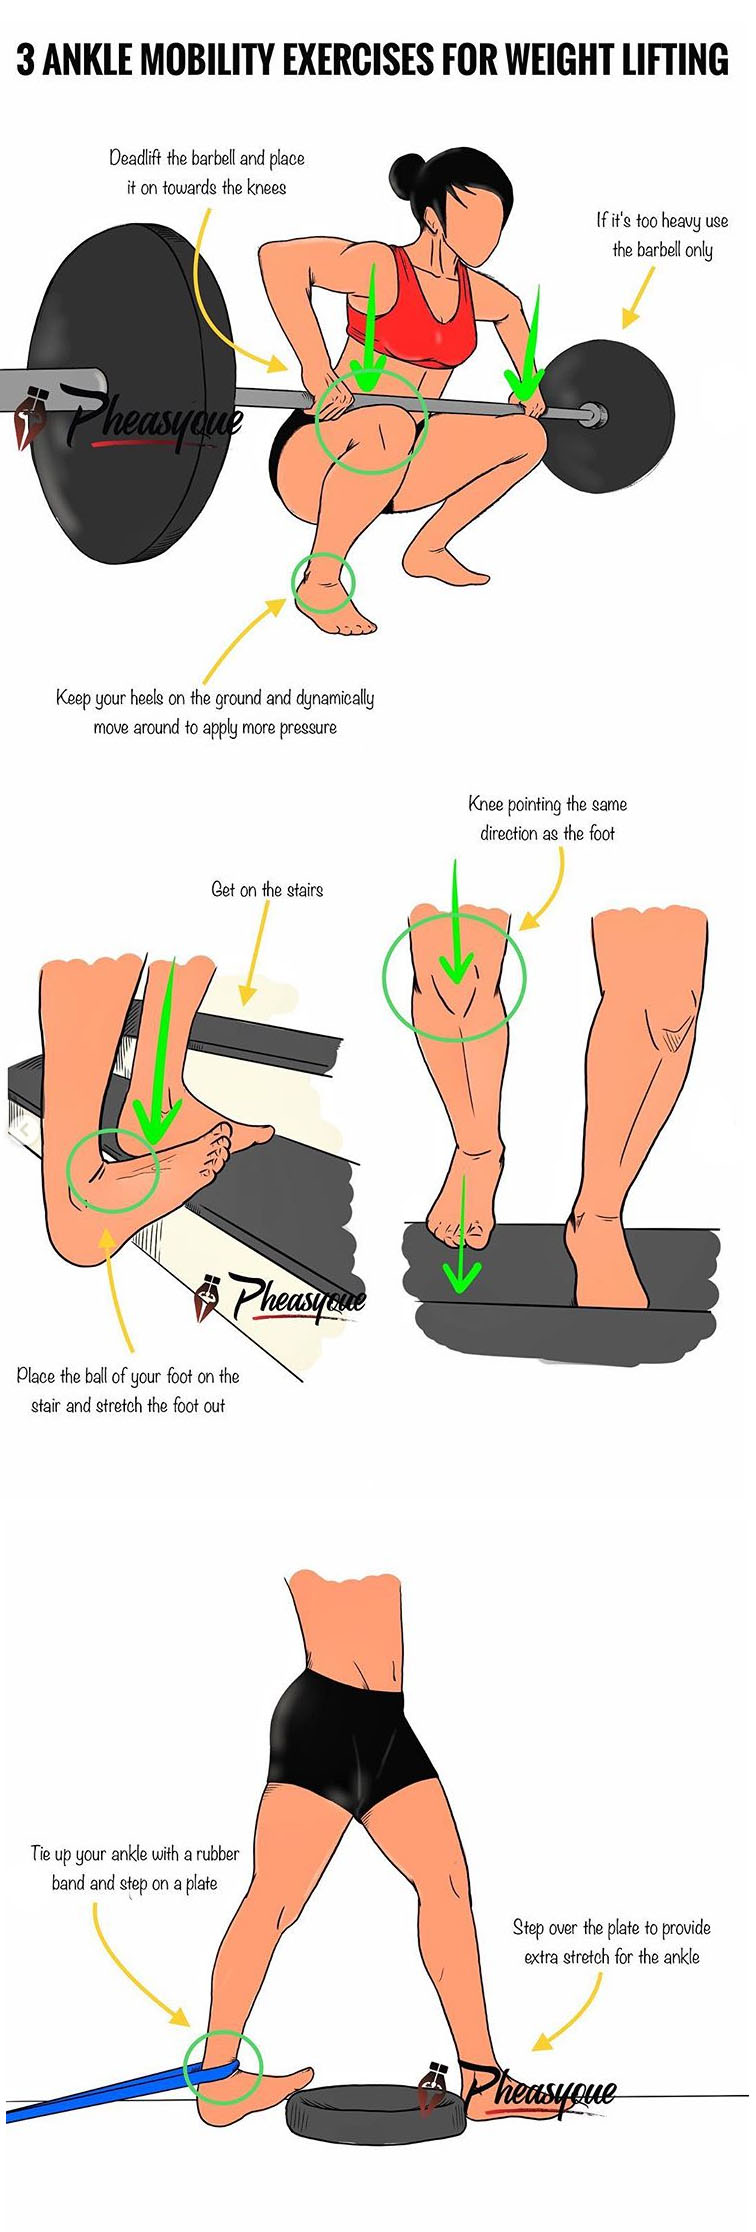 3 ANKLE MOBILITY EXERCISES TO IMPROVE YOUR SQUATS